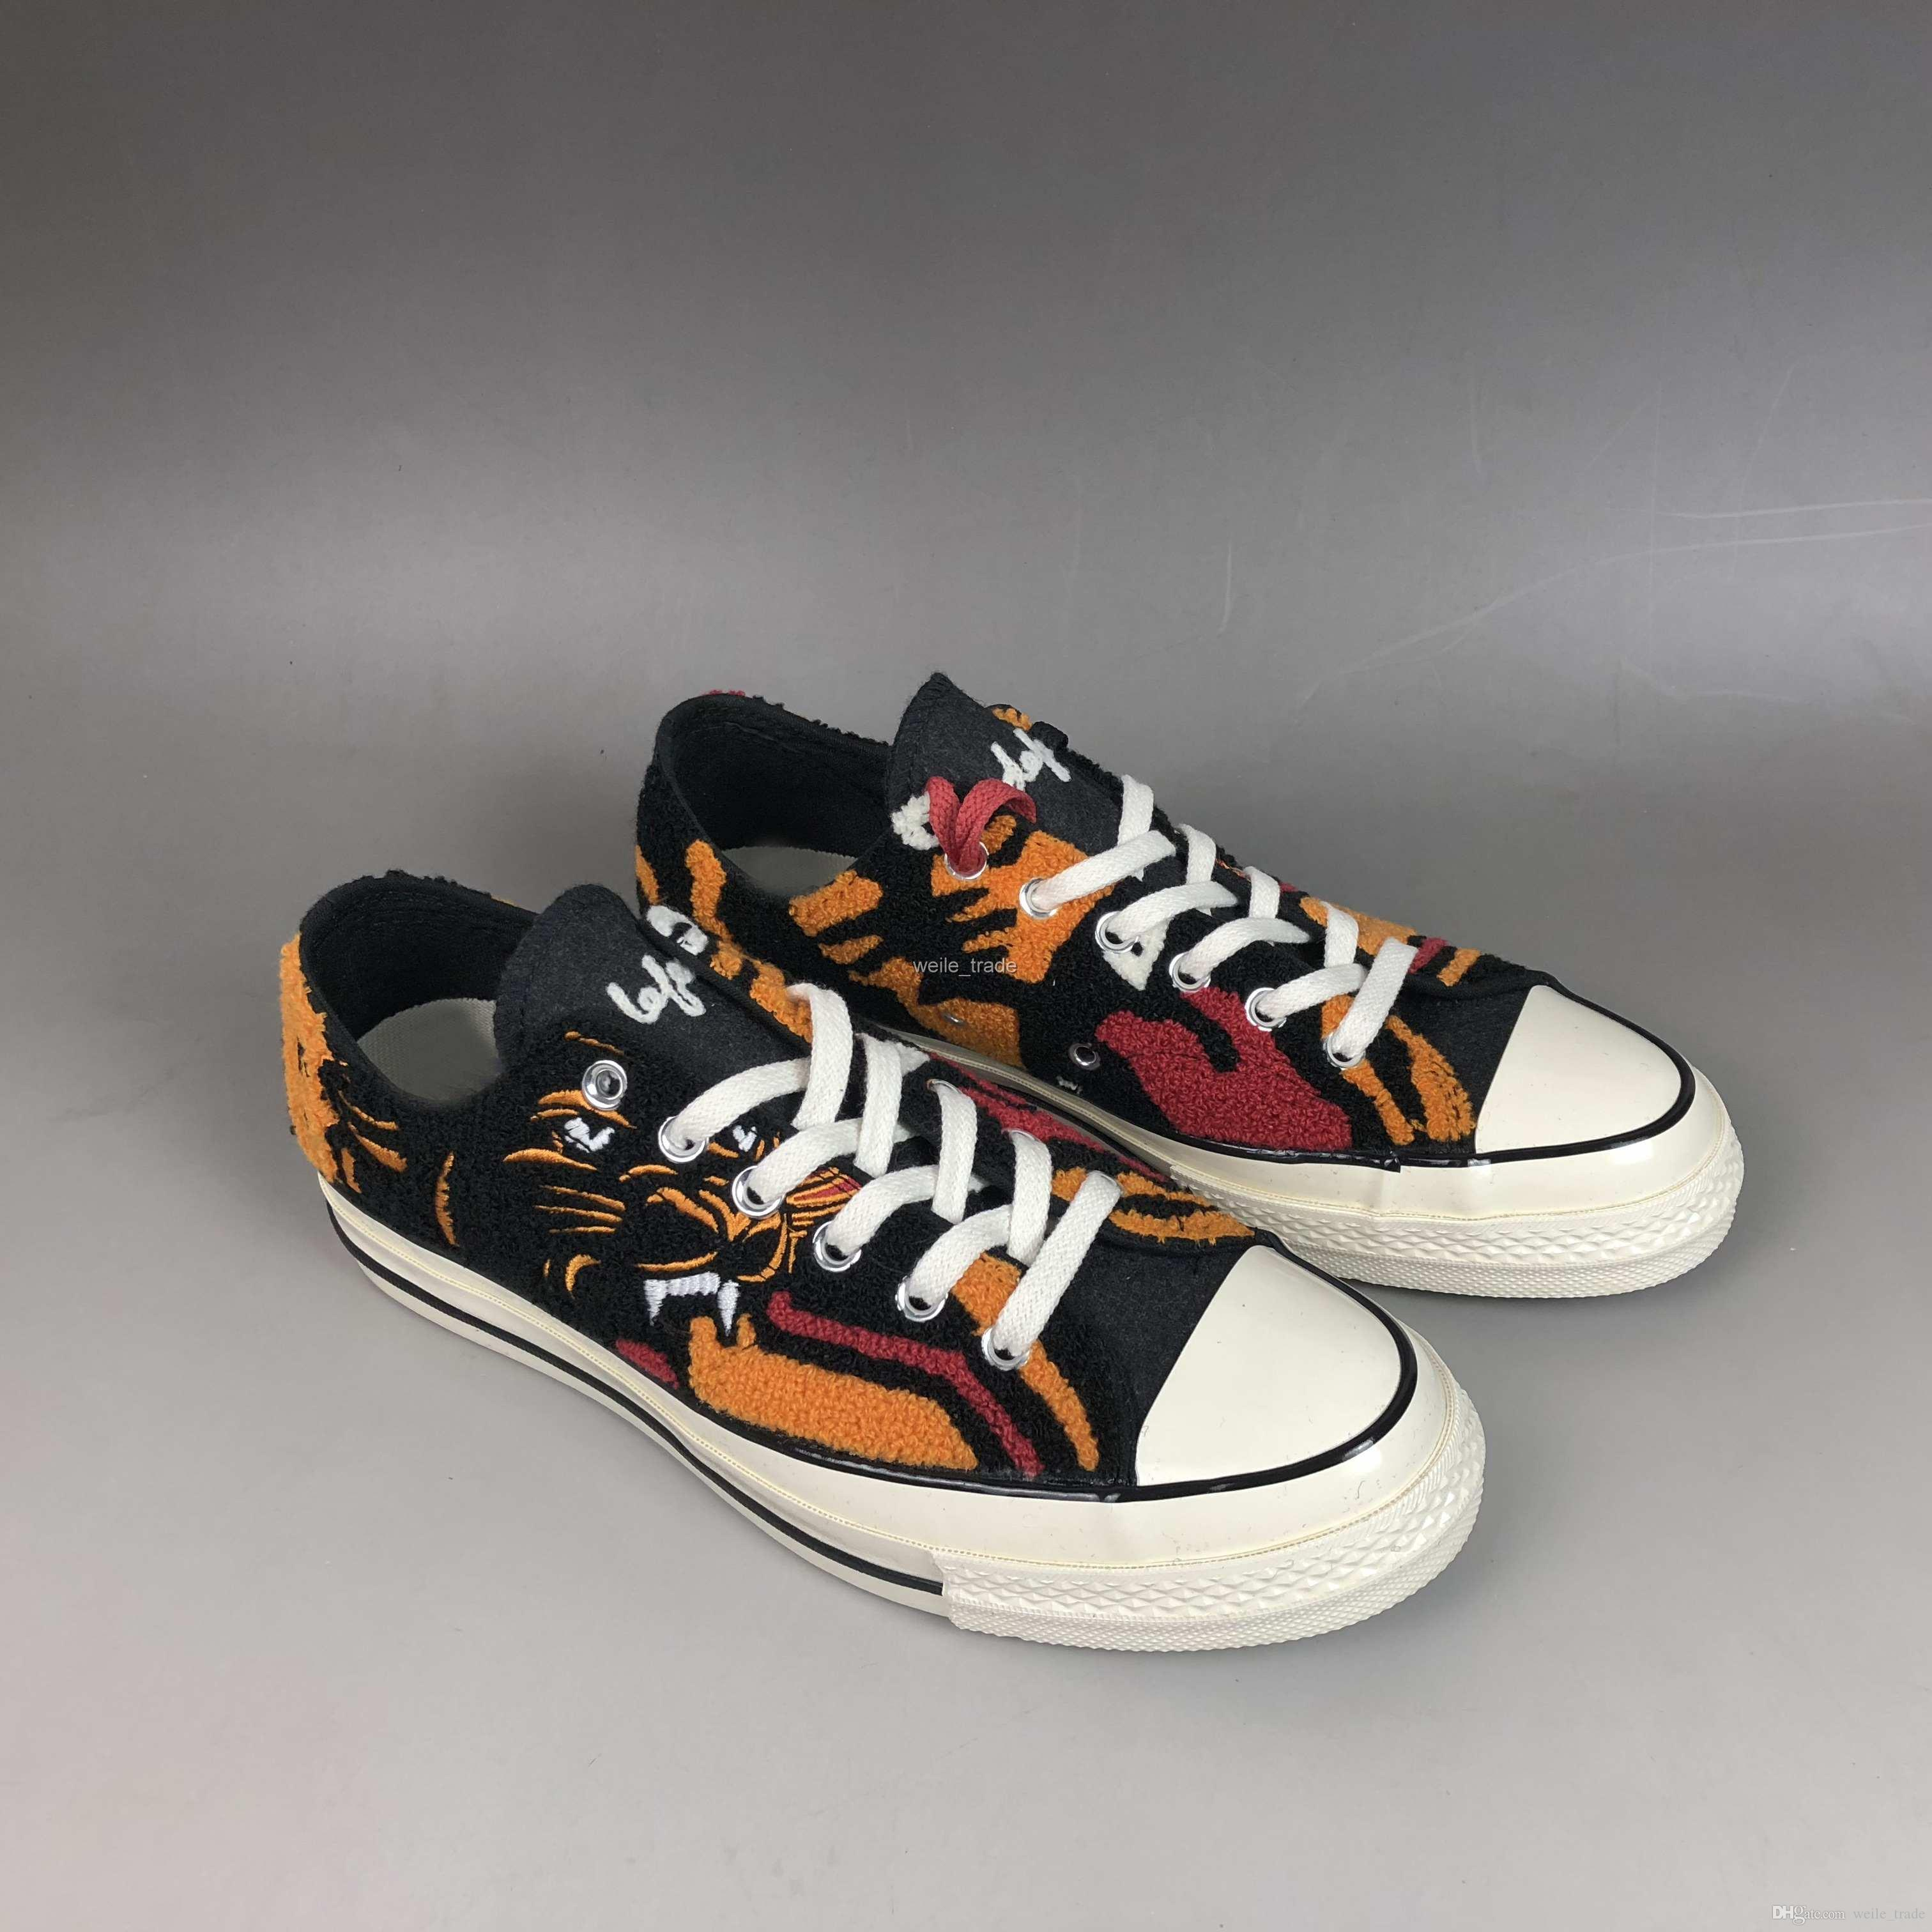 b410e5dc414838 2019 New Undefeated X Chuck 1970 Ox Low Casual All Star Fashion ...